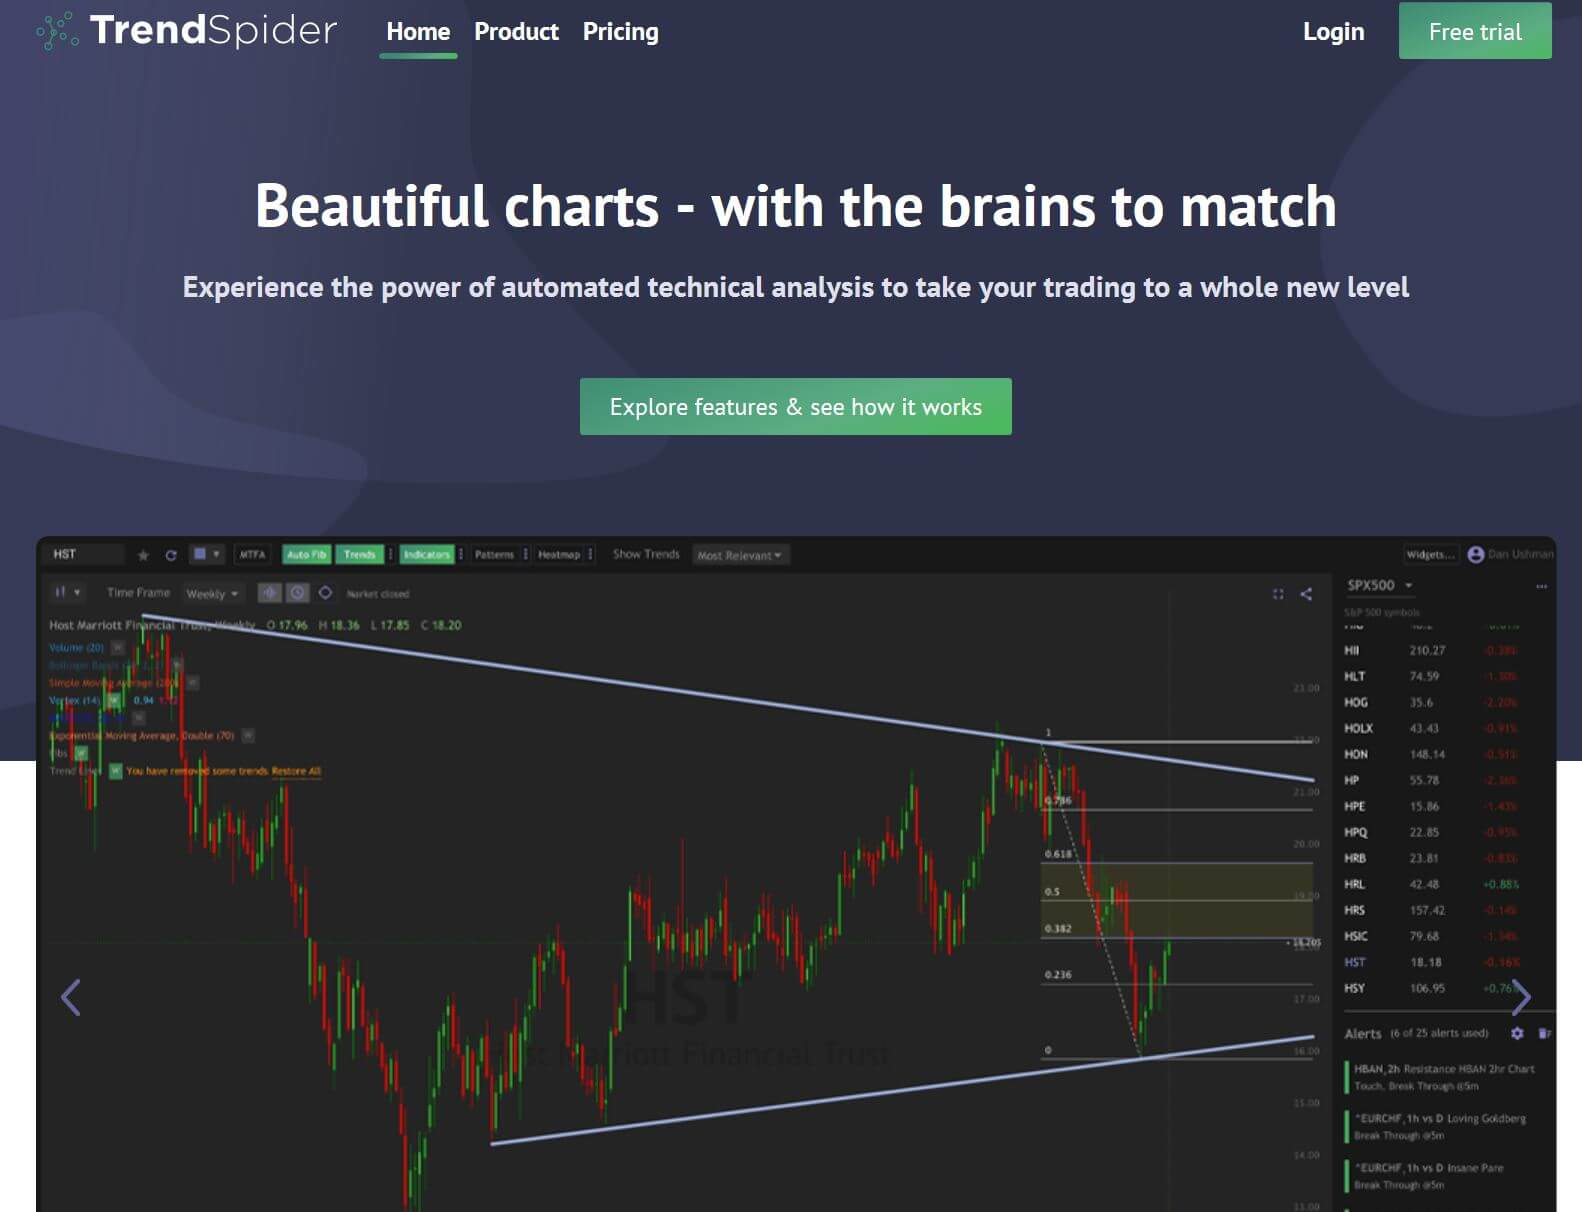 TrendSpider - Artificial Intelligence Stock Trading Software